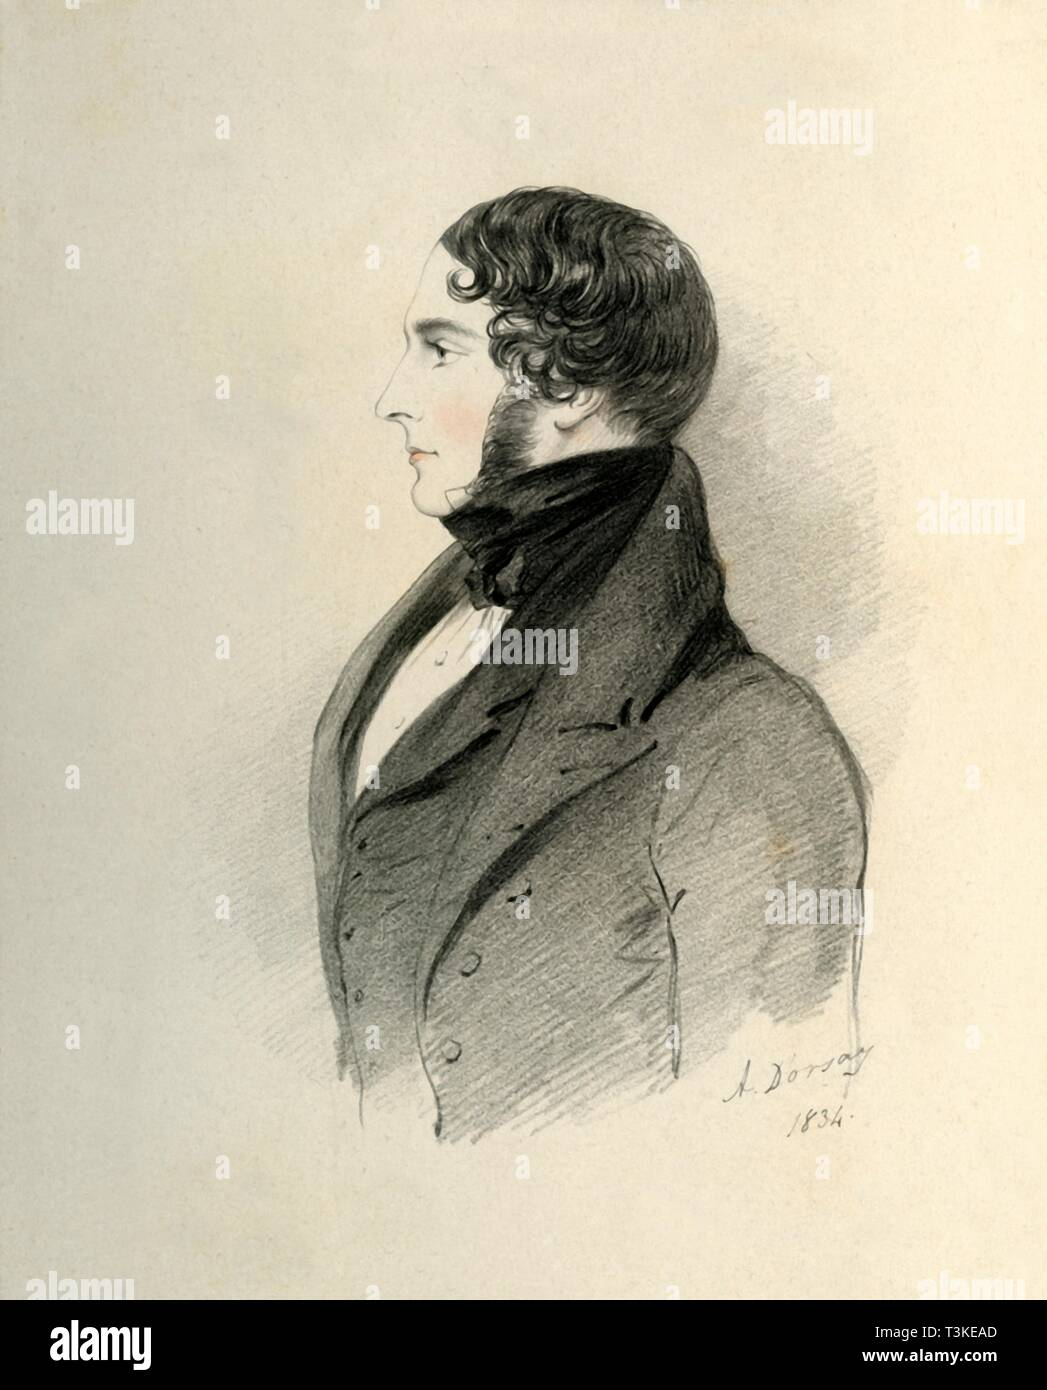 """'William Massey Stanley Esquire', 1834. Portrait of Sir William Stanley-Massey-Stanley, 10th Baronet, (c1806-1863), British landowner and Conservative politician. From """"Portraits by Count D'Orsay"""", an album assembled by Lady Georgiana Codrington. [1850s] - Stock Image"""